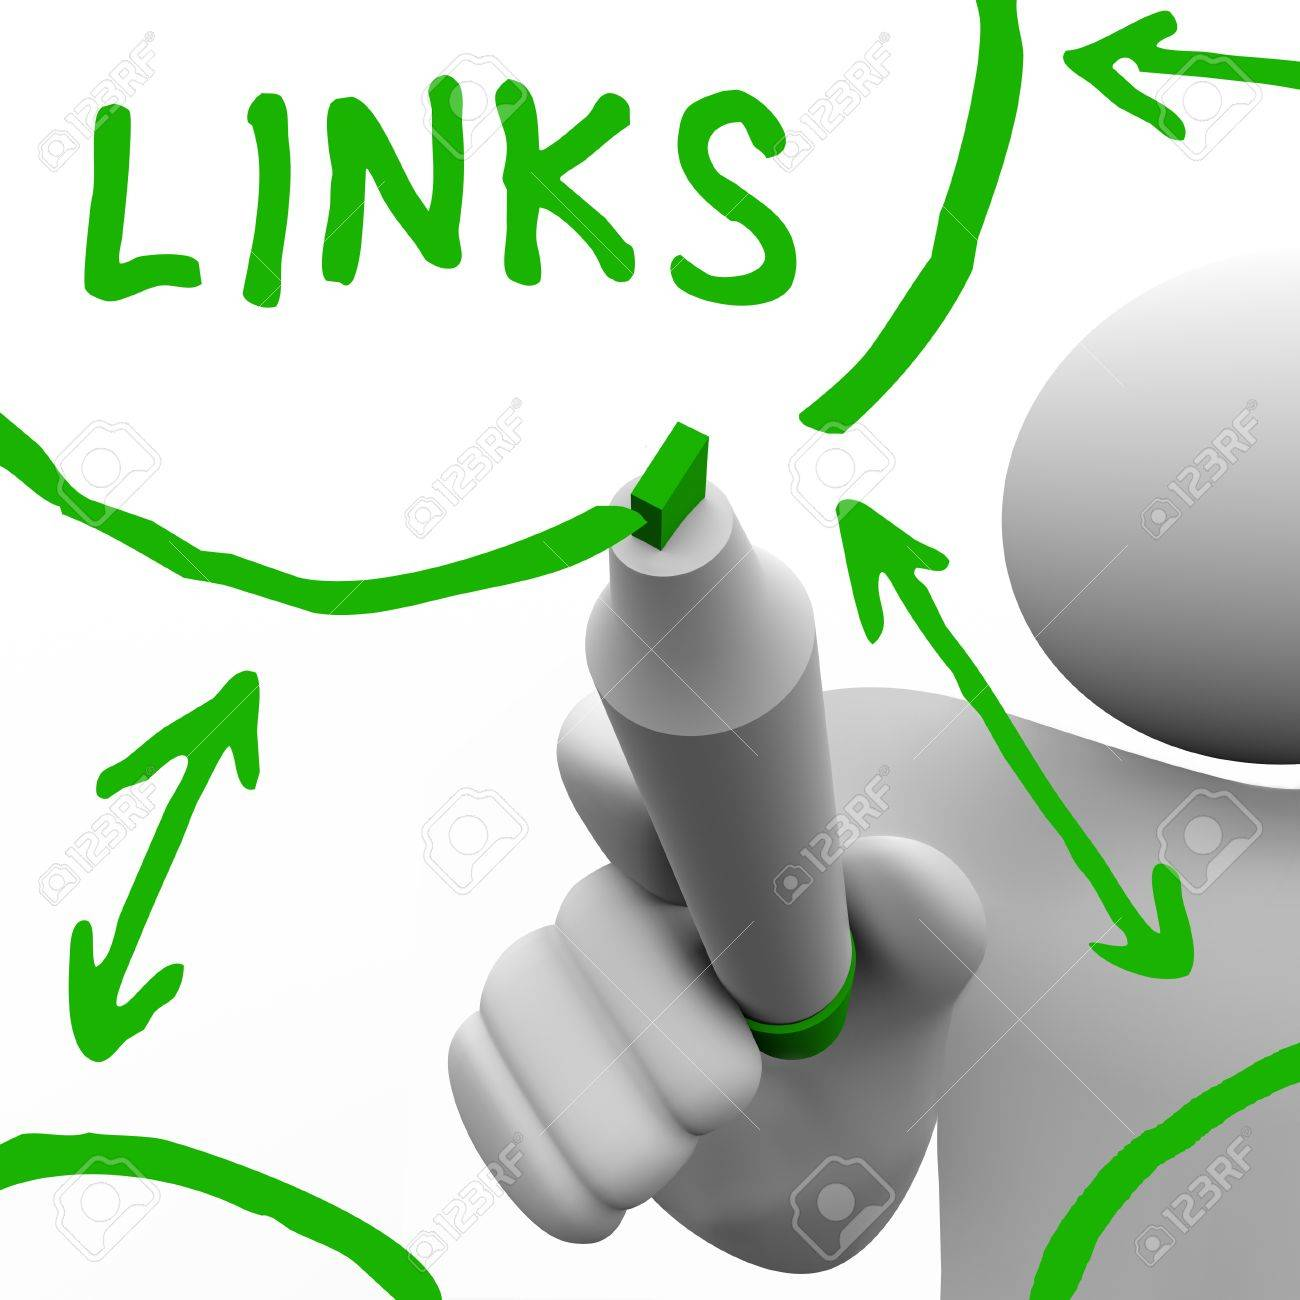 A person draws a series of links connecting in a network of referrals, representing a well search engine optimized website or an organization of connected people Stock Photo - 10266534